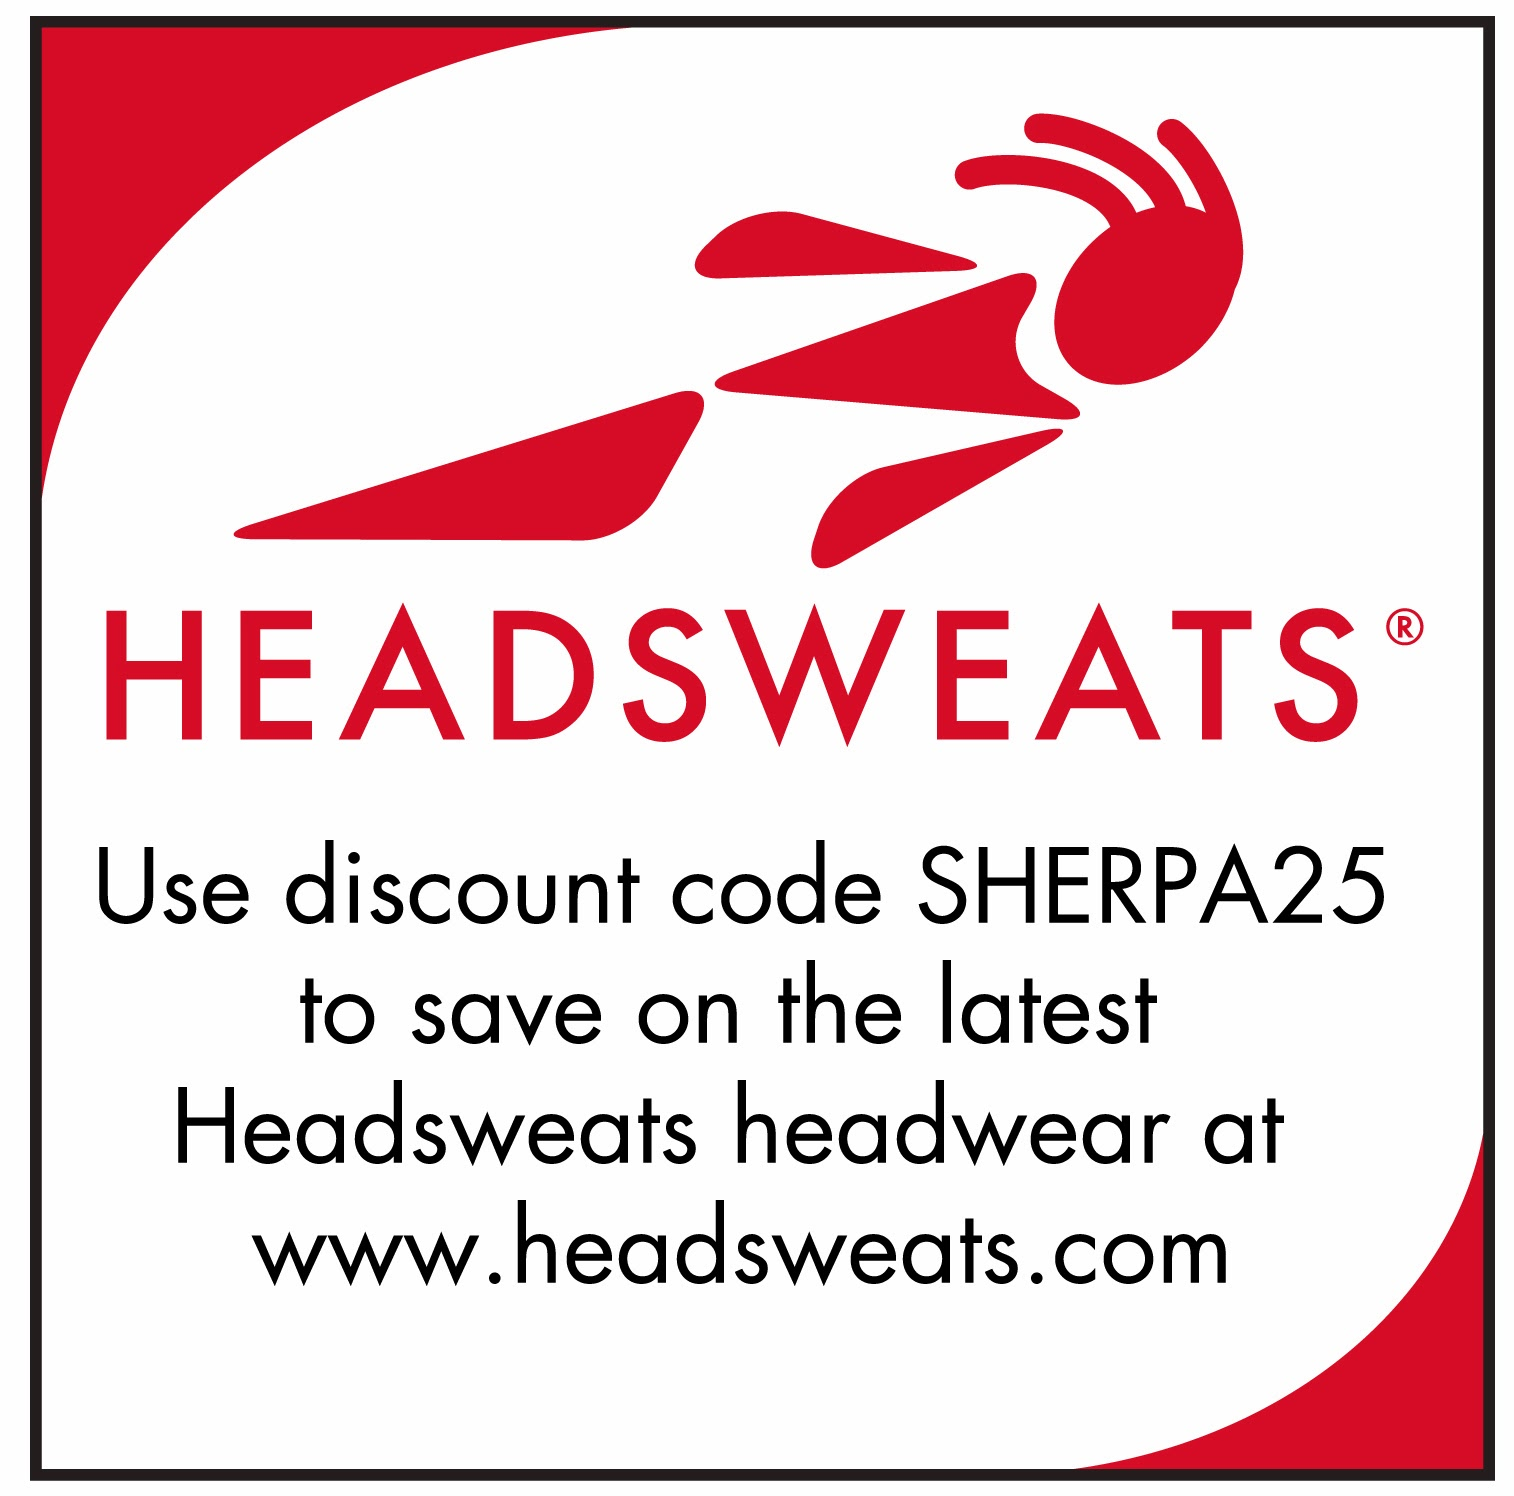 Headsweats Offer